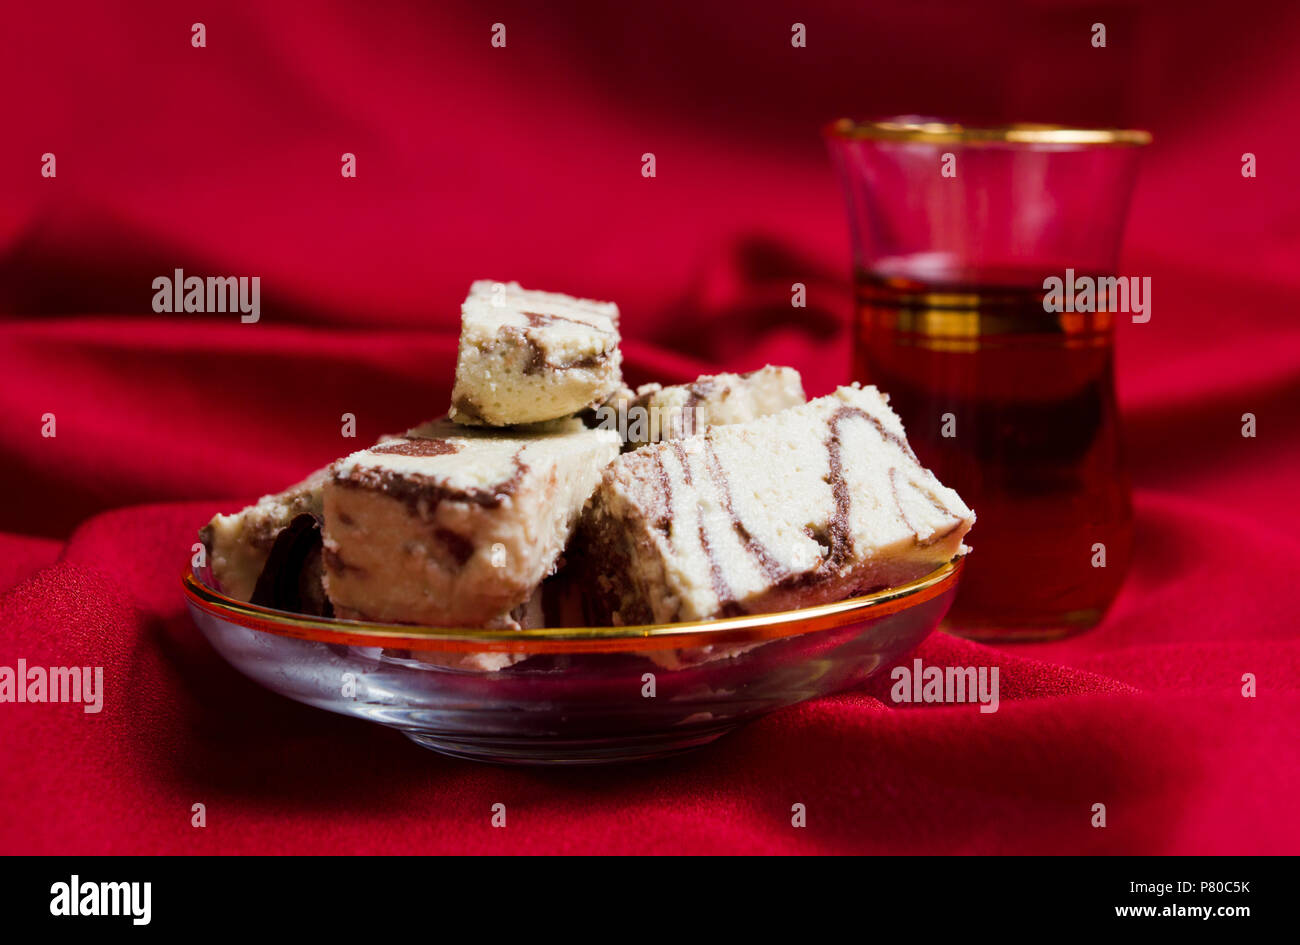 Halva with cacao served with tea on a plate - Stock Image